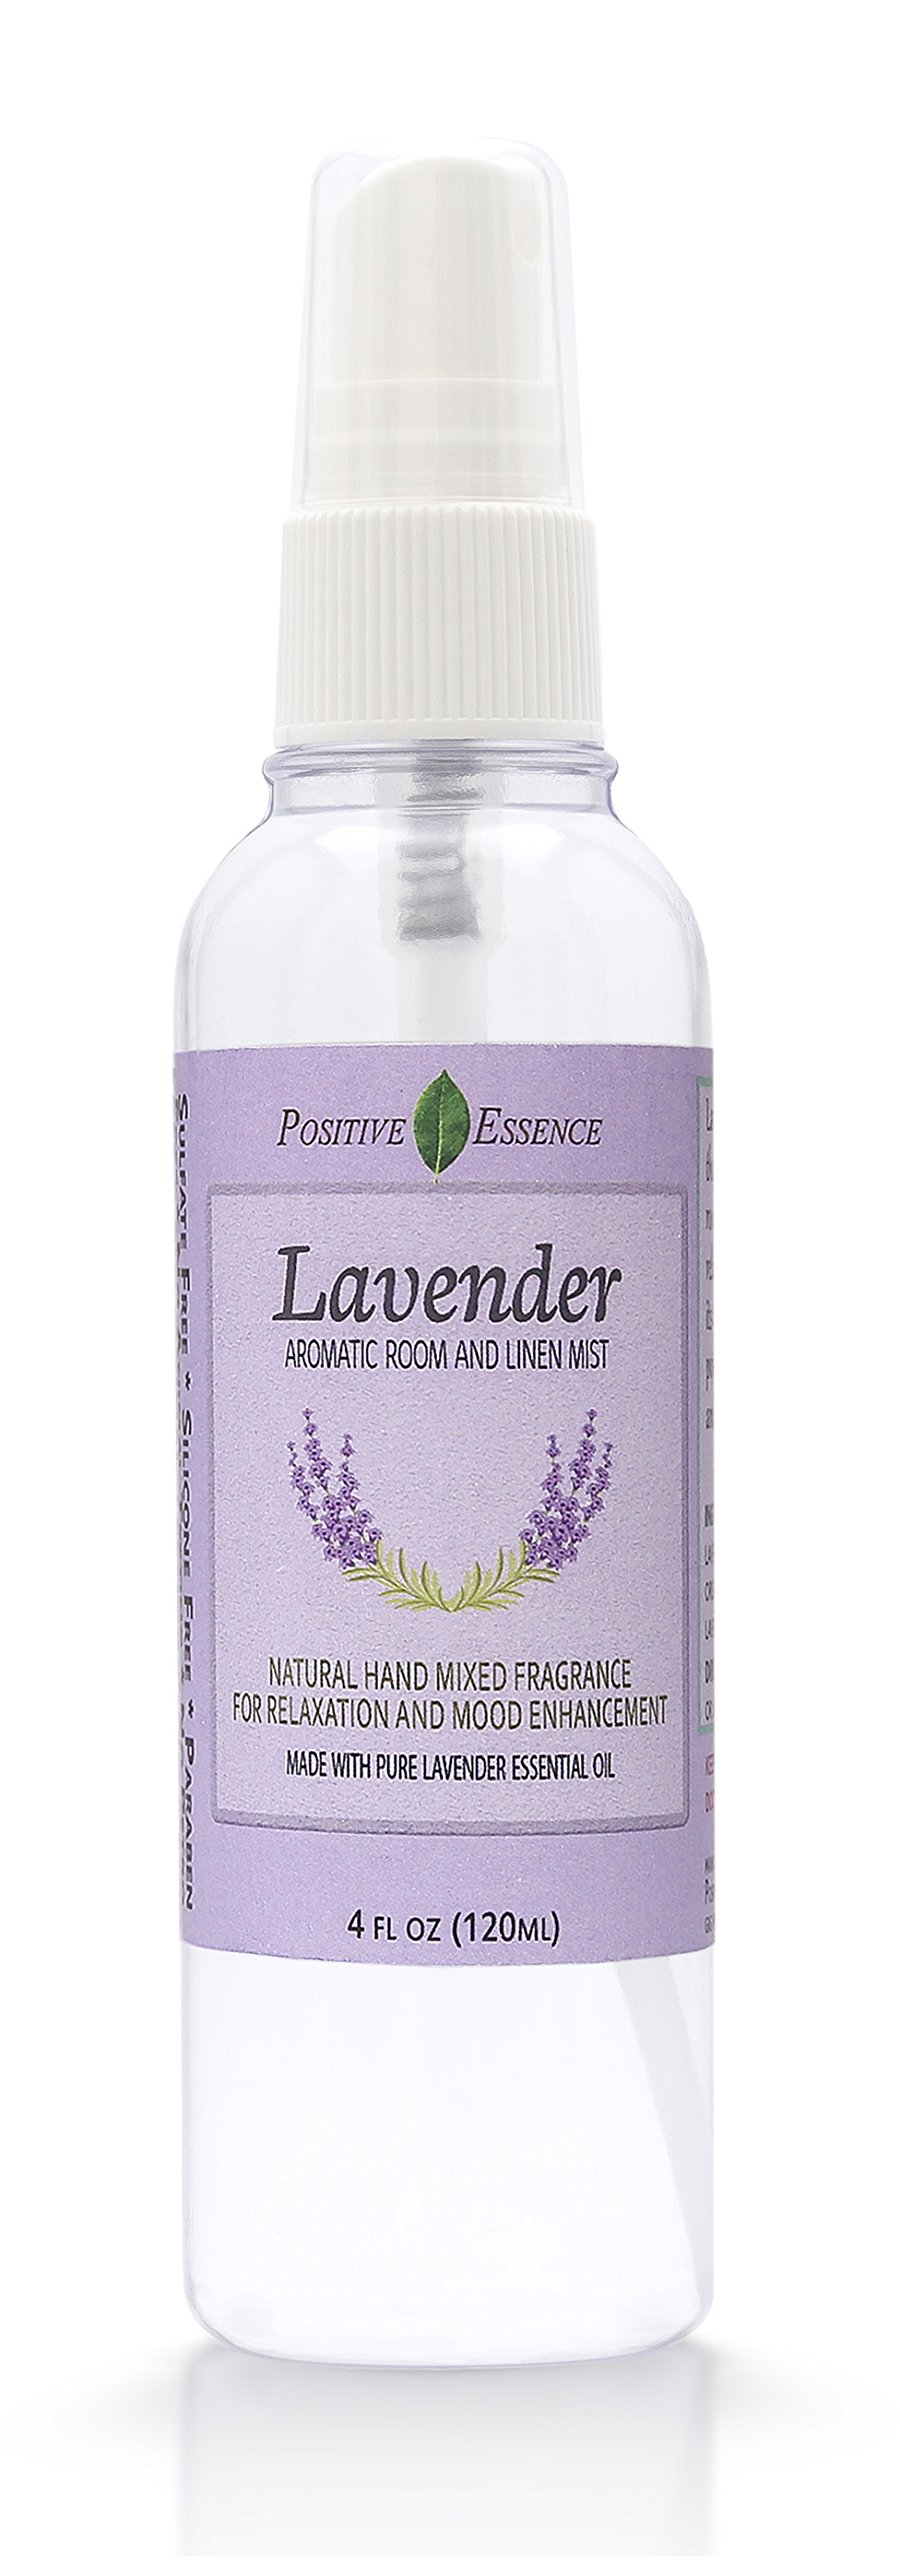 Positive Essence Lavender Linen & Room Spray - Natural Aromatic Mist Made with PURE LAVENDER ESSENTIAL OIL - Relax Your Body & Mind – Refreshing Non-Toxic Air Freshener Odor Eliminator by Positive Essence (Image #1)